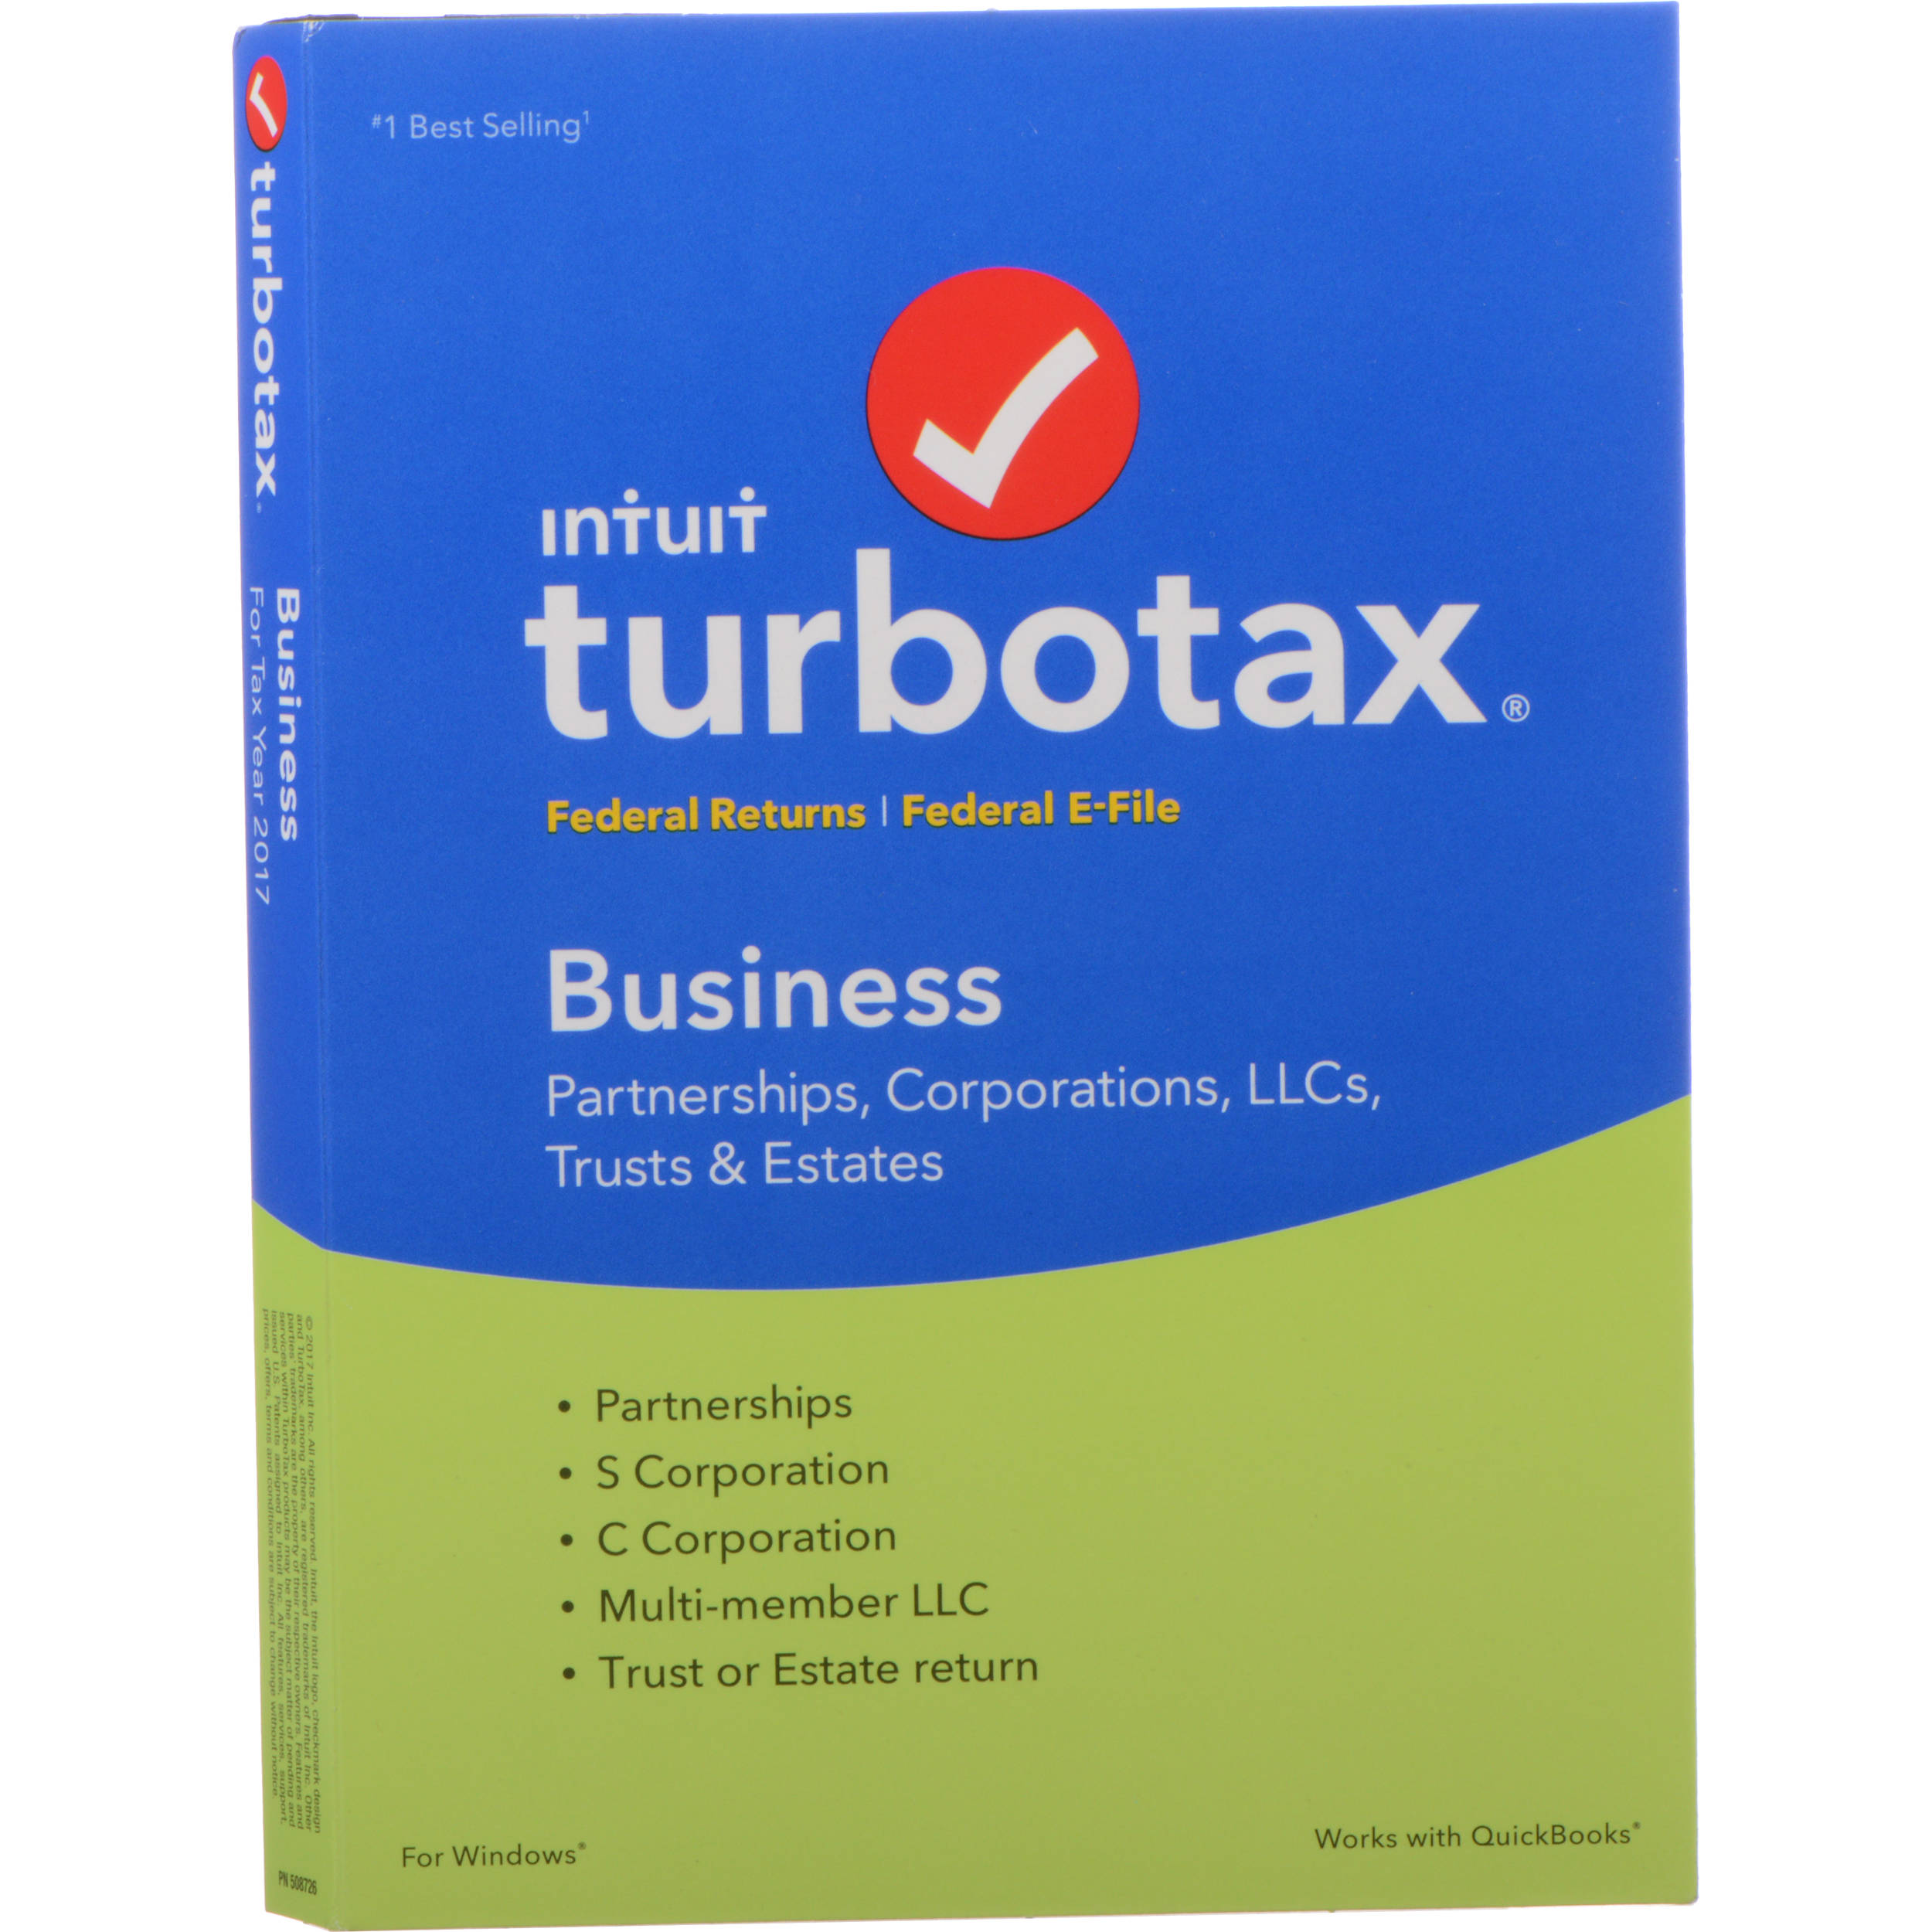 Though among the pricier tax software options, TurboTax does provide discounts, special offers, and other savings opportunities. We've included a few key tips for getting the best price with TurboTax below. File state and federal returns for free. If you have a simple tax situation, you may be able file your state and federal returns for free. TurboTax offers free filing for EZ/A forms, with automatic W-2 .